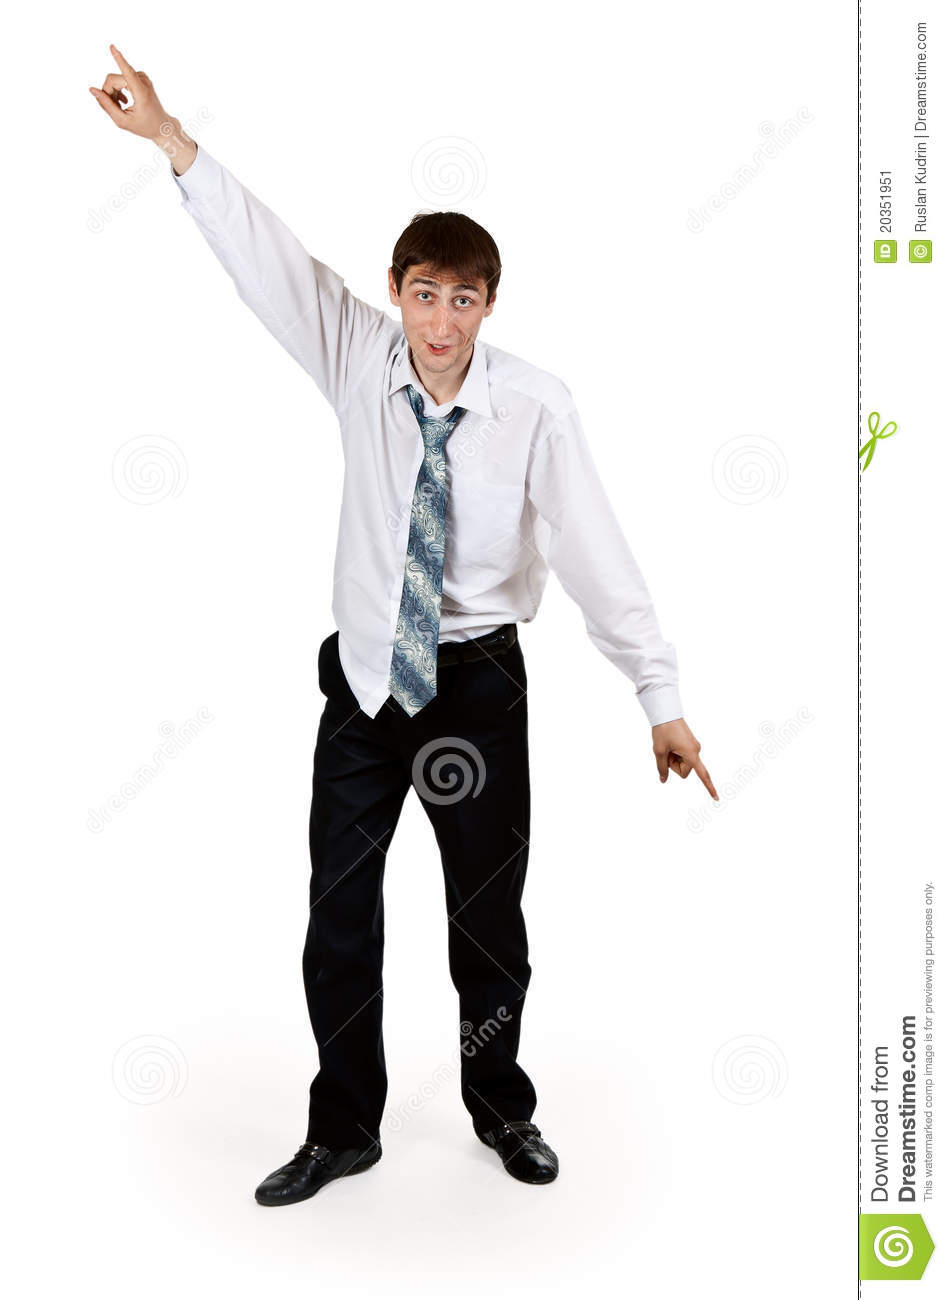 Drunk Businessman With Ragged Clothes Stock Image - Image ...  Ragged Clothes